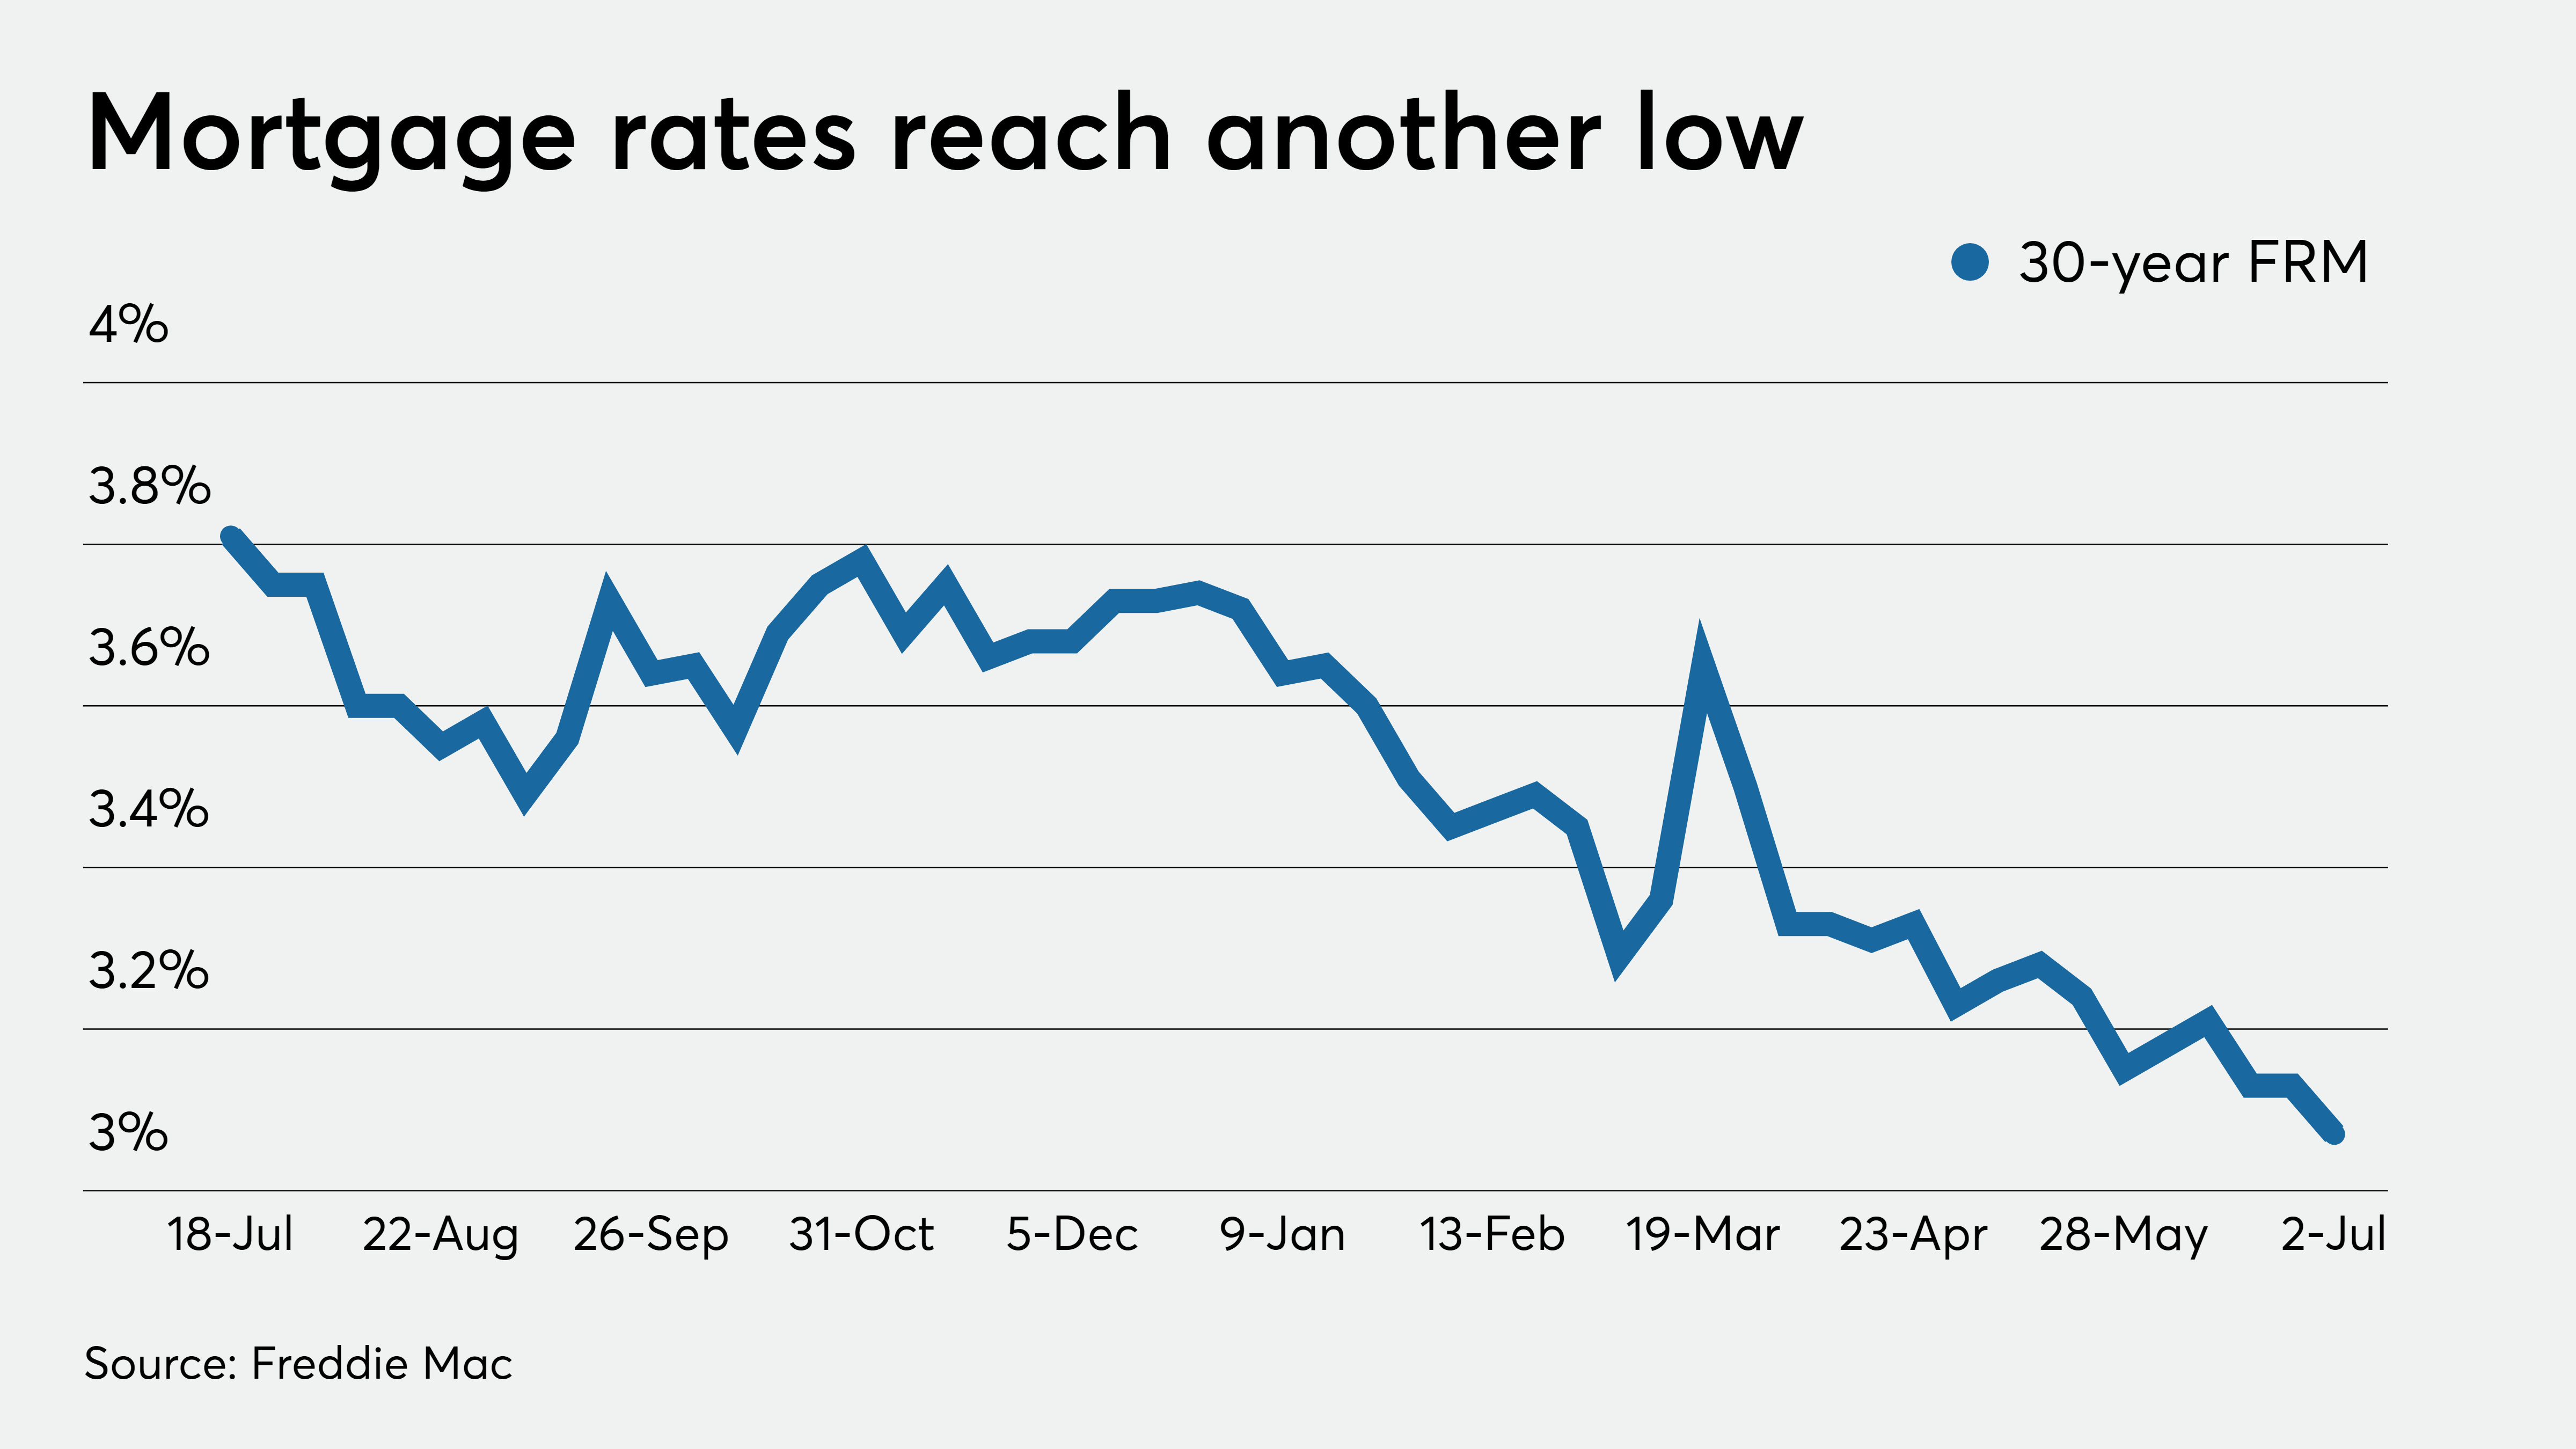 US Long-Term Mortgage Rates Hit All-Time Low Again